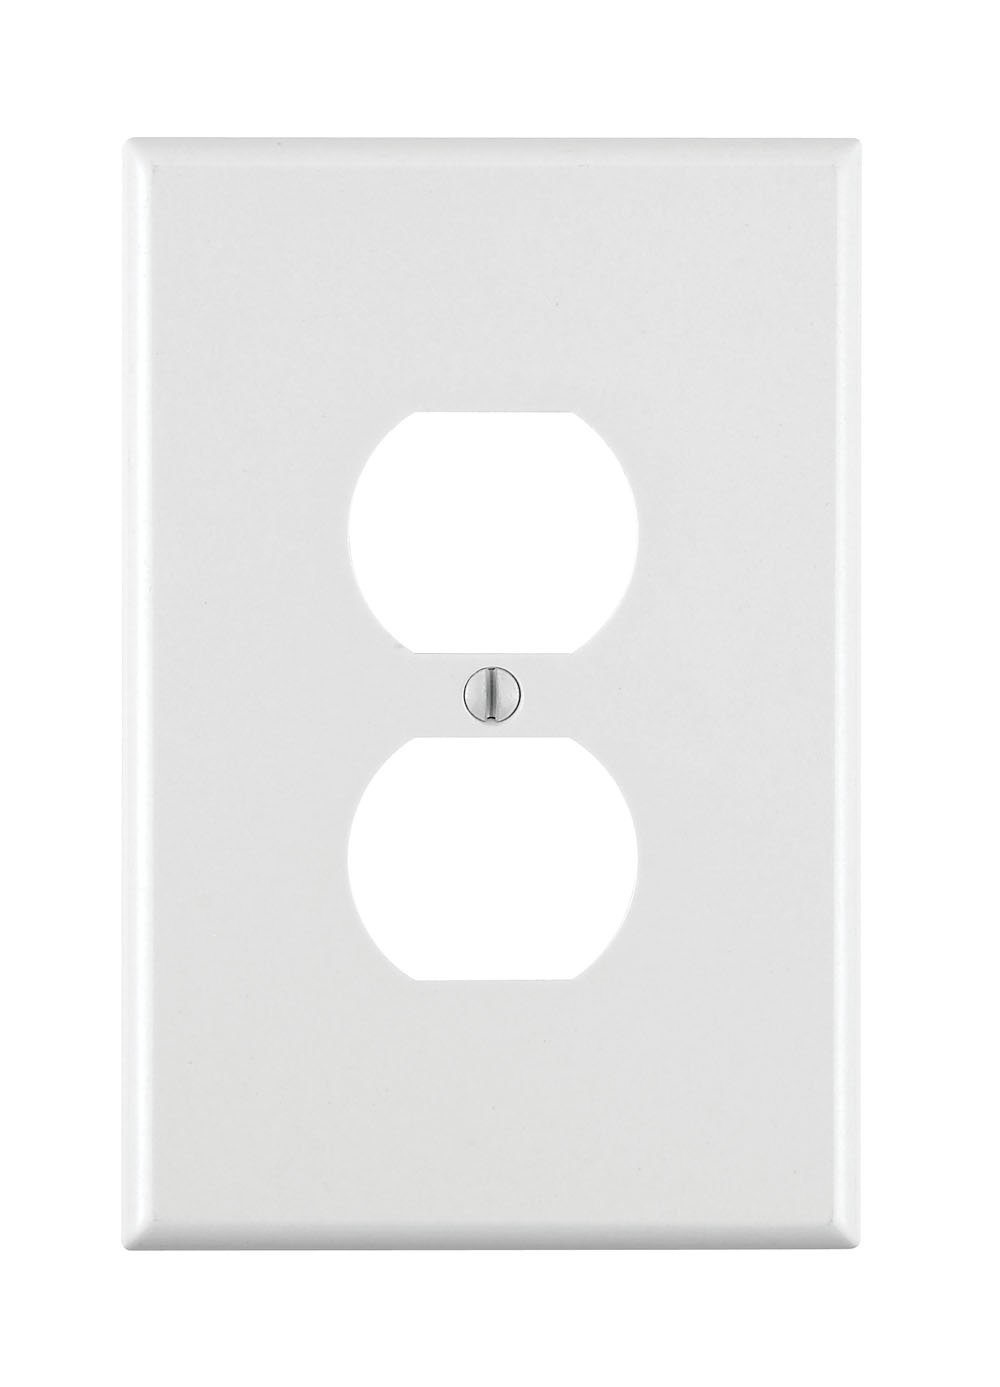 Leviton 88103 1-Gang Duplex Device Receptacle Wallplate, Oversized, Thermoset, Device Mount, 25-Pack, White